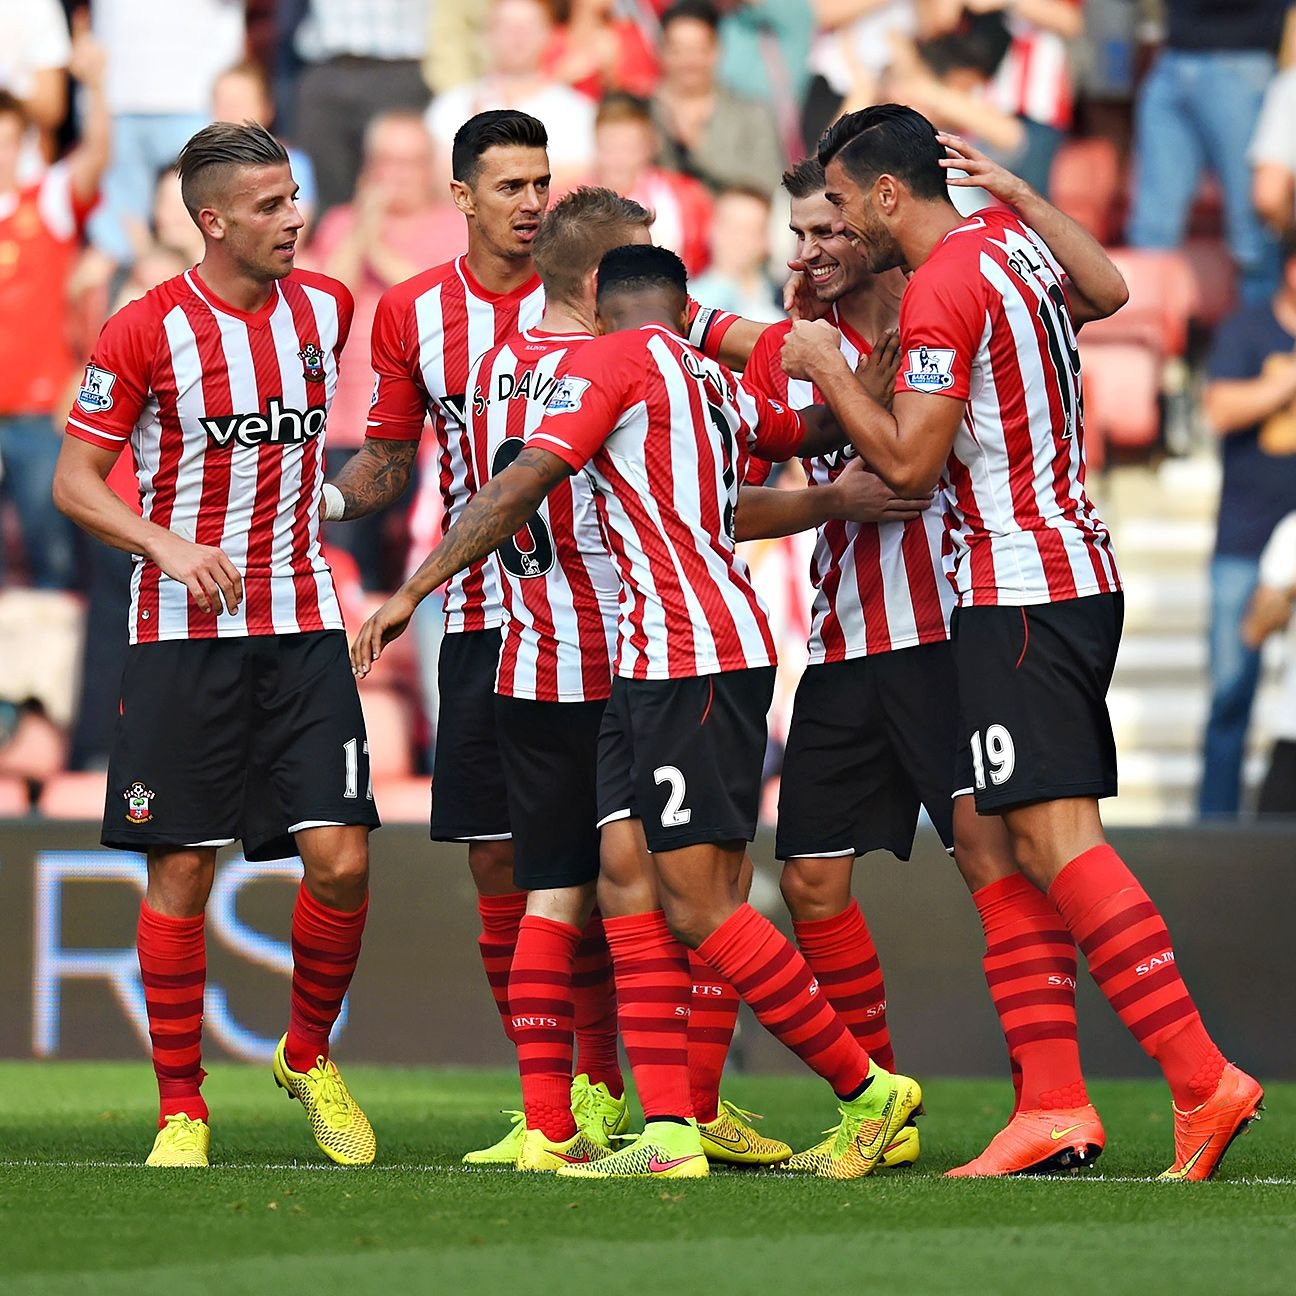 Southampton's height could be the decisive factor this weekend against Swansea.